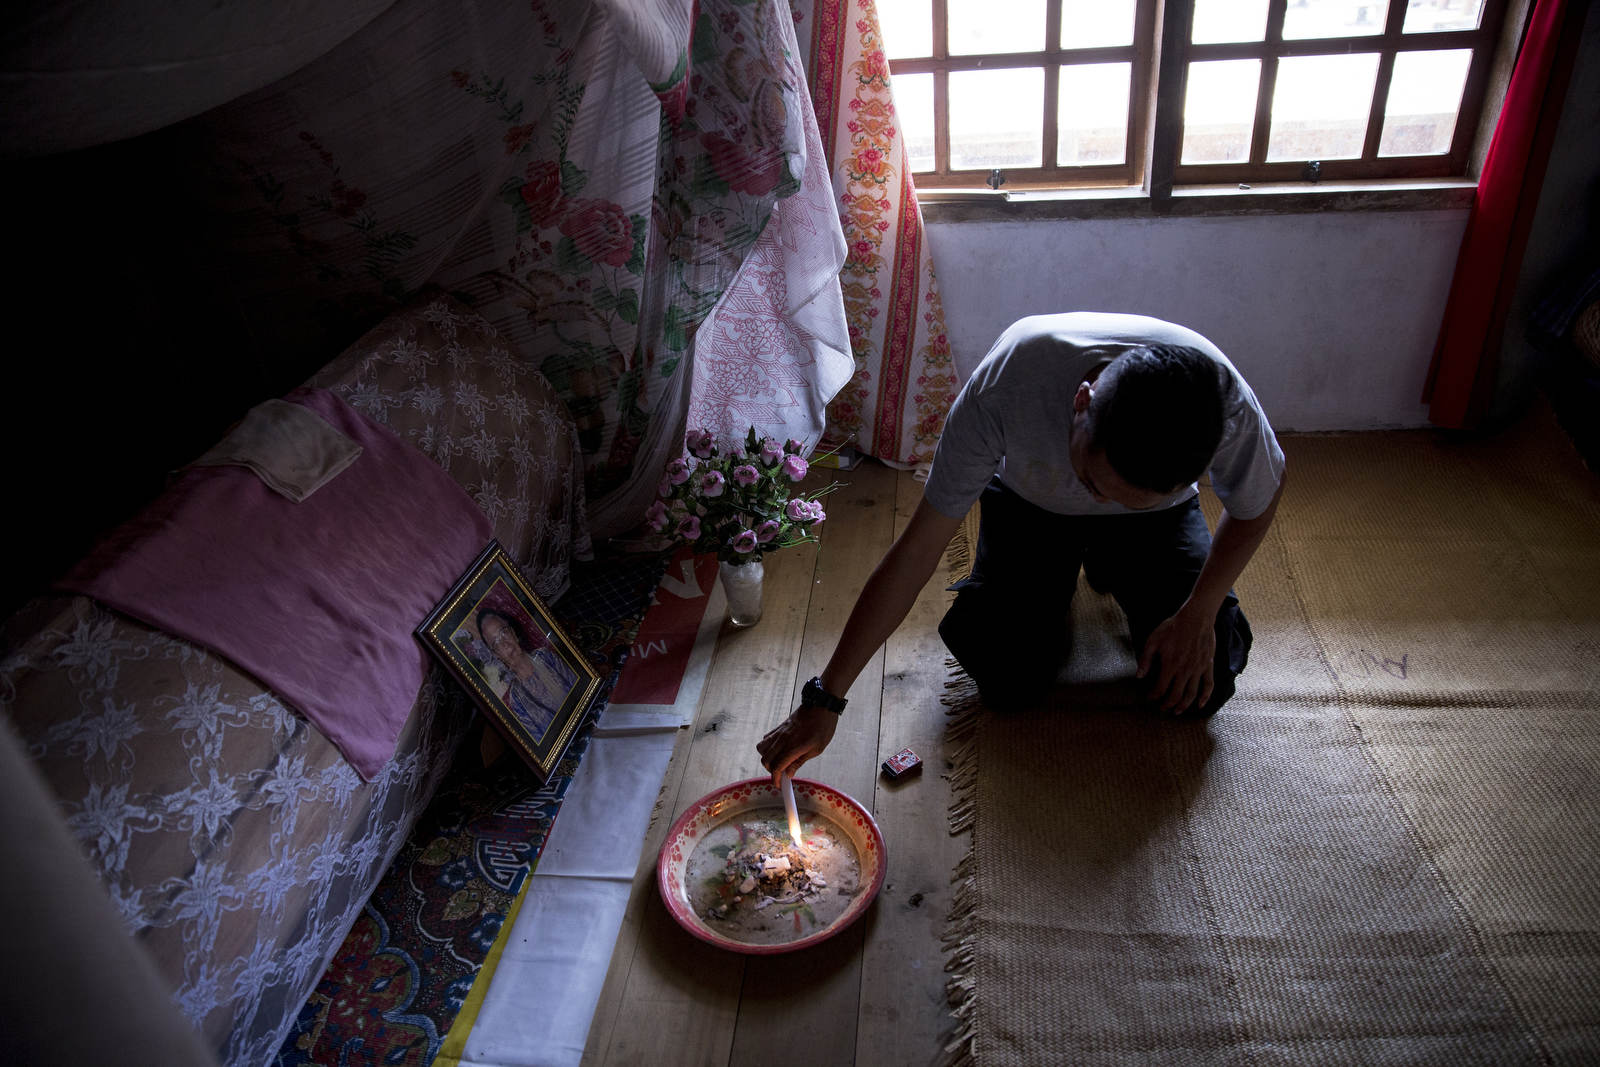 Fyant lights a candle for his grandmother, who has been dead since 2009. His family is saving up money for her funeral.